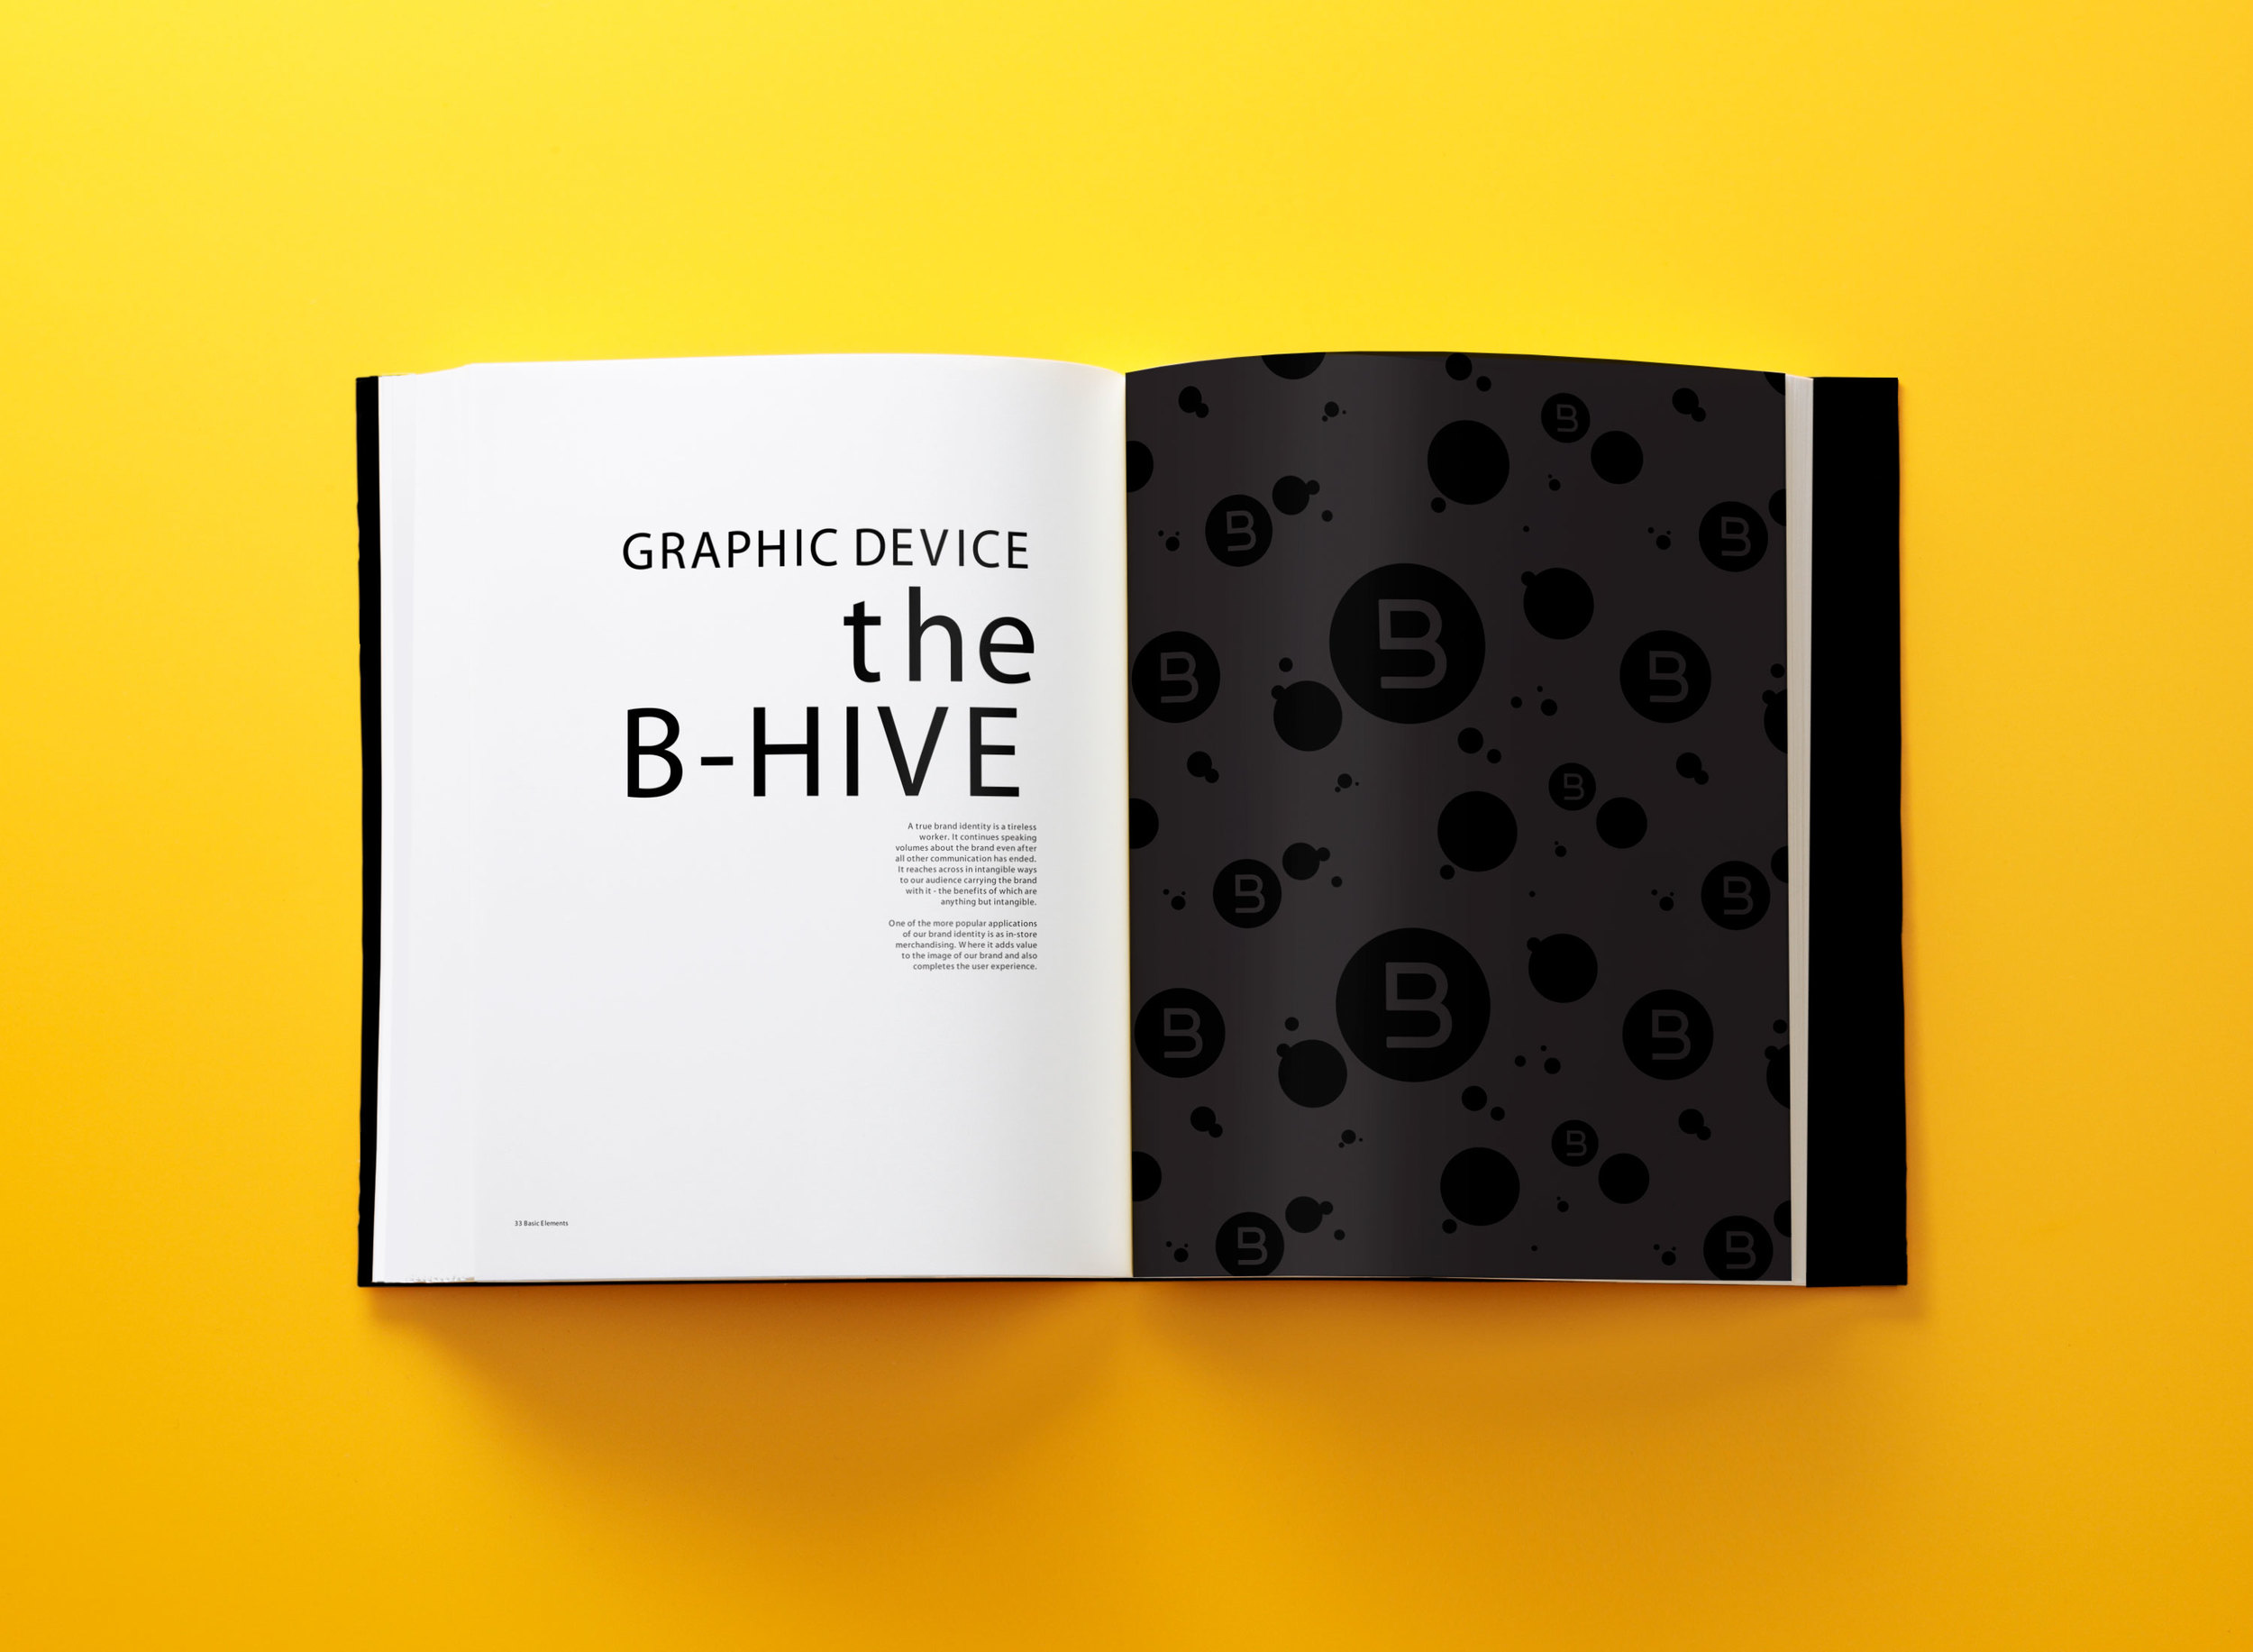 NEW-BurJuman-Identity-Book-The-B-Hive.jpg